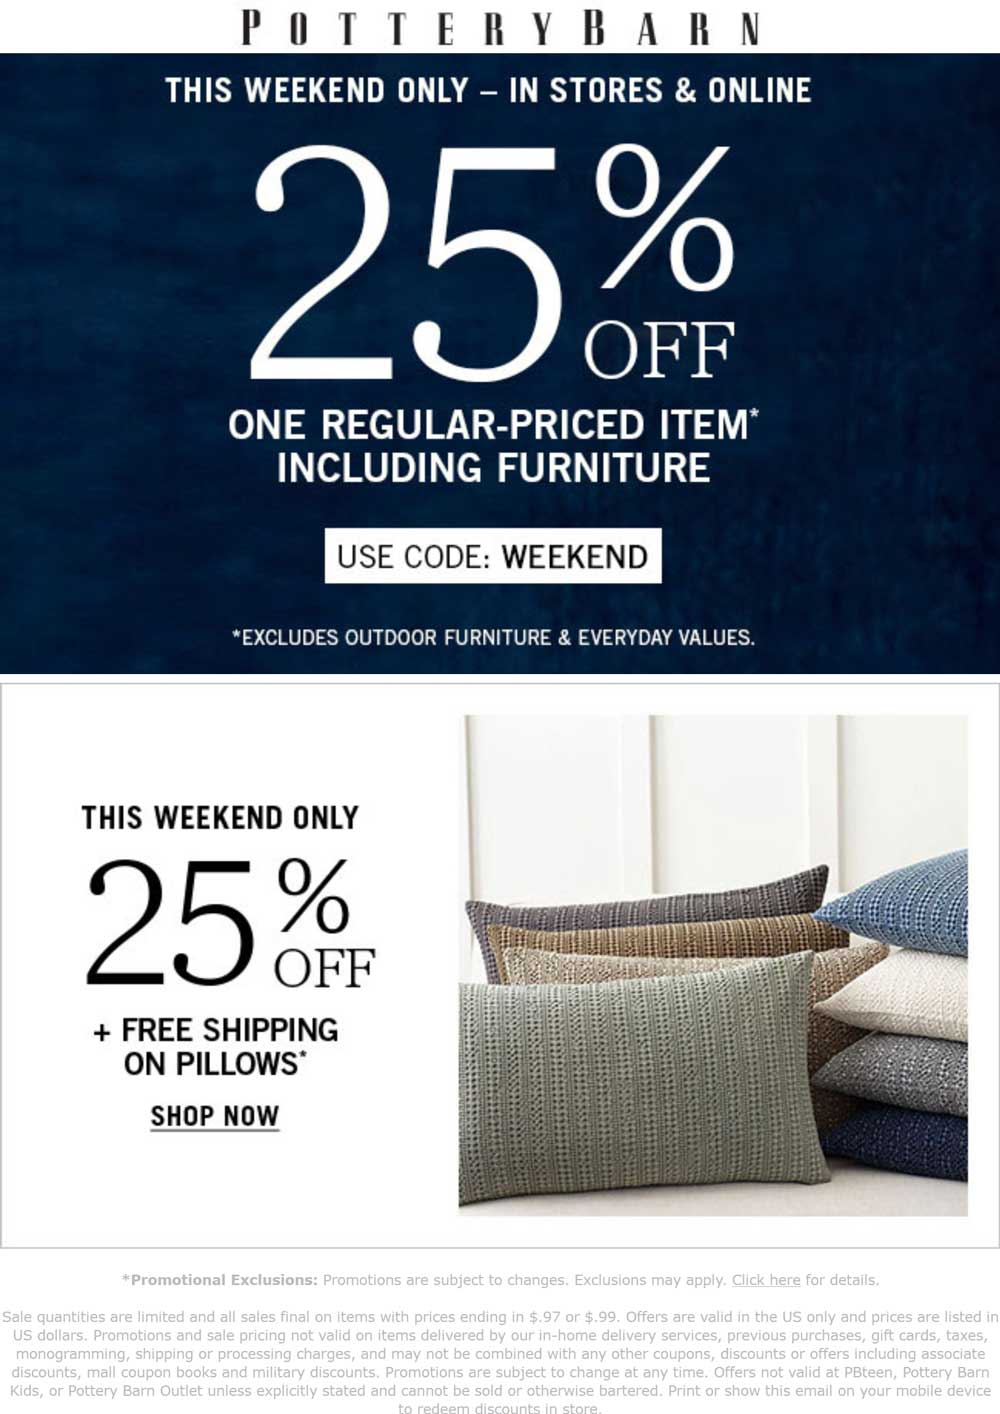 Pottery Barn Coupon October 2018 25% off a single item at Pottery Barn, or online via promo code WEEKEND